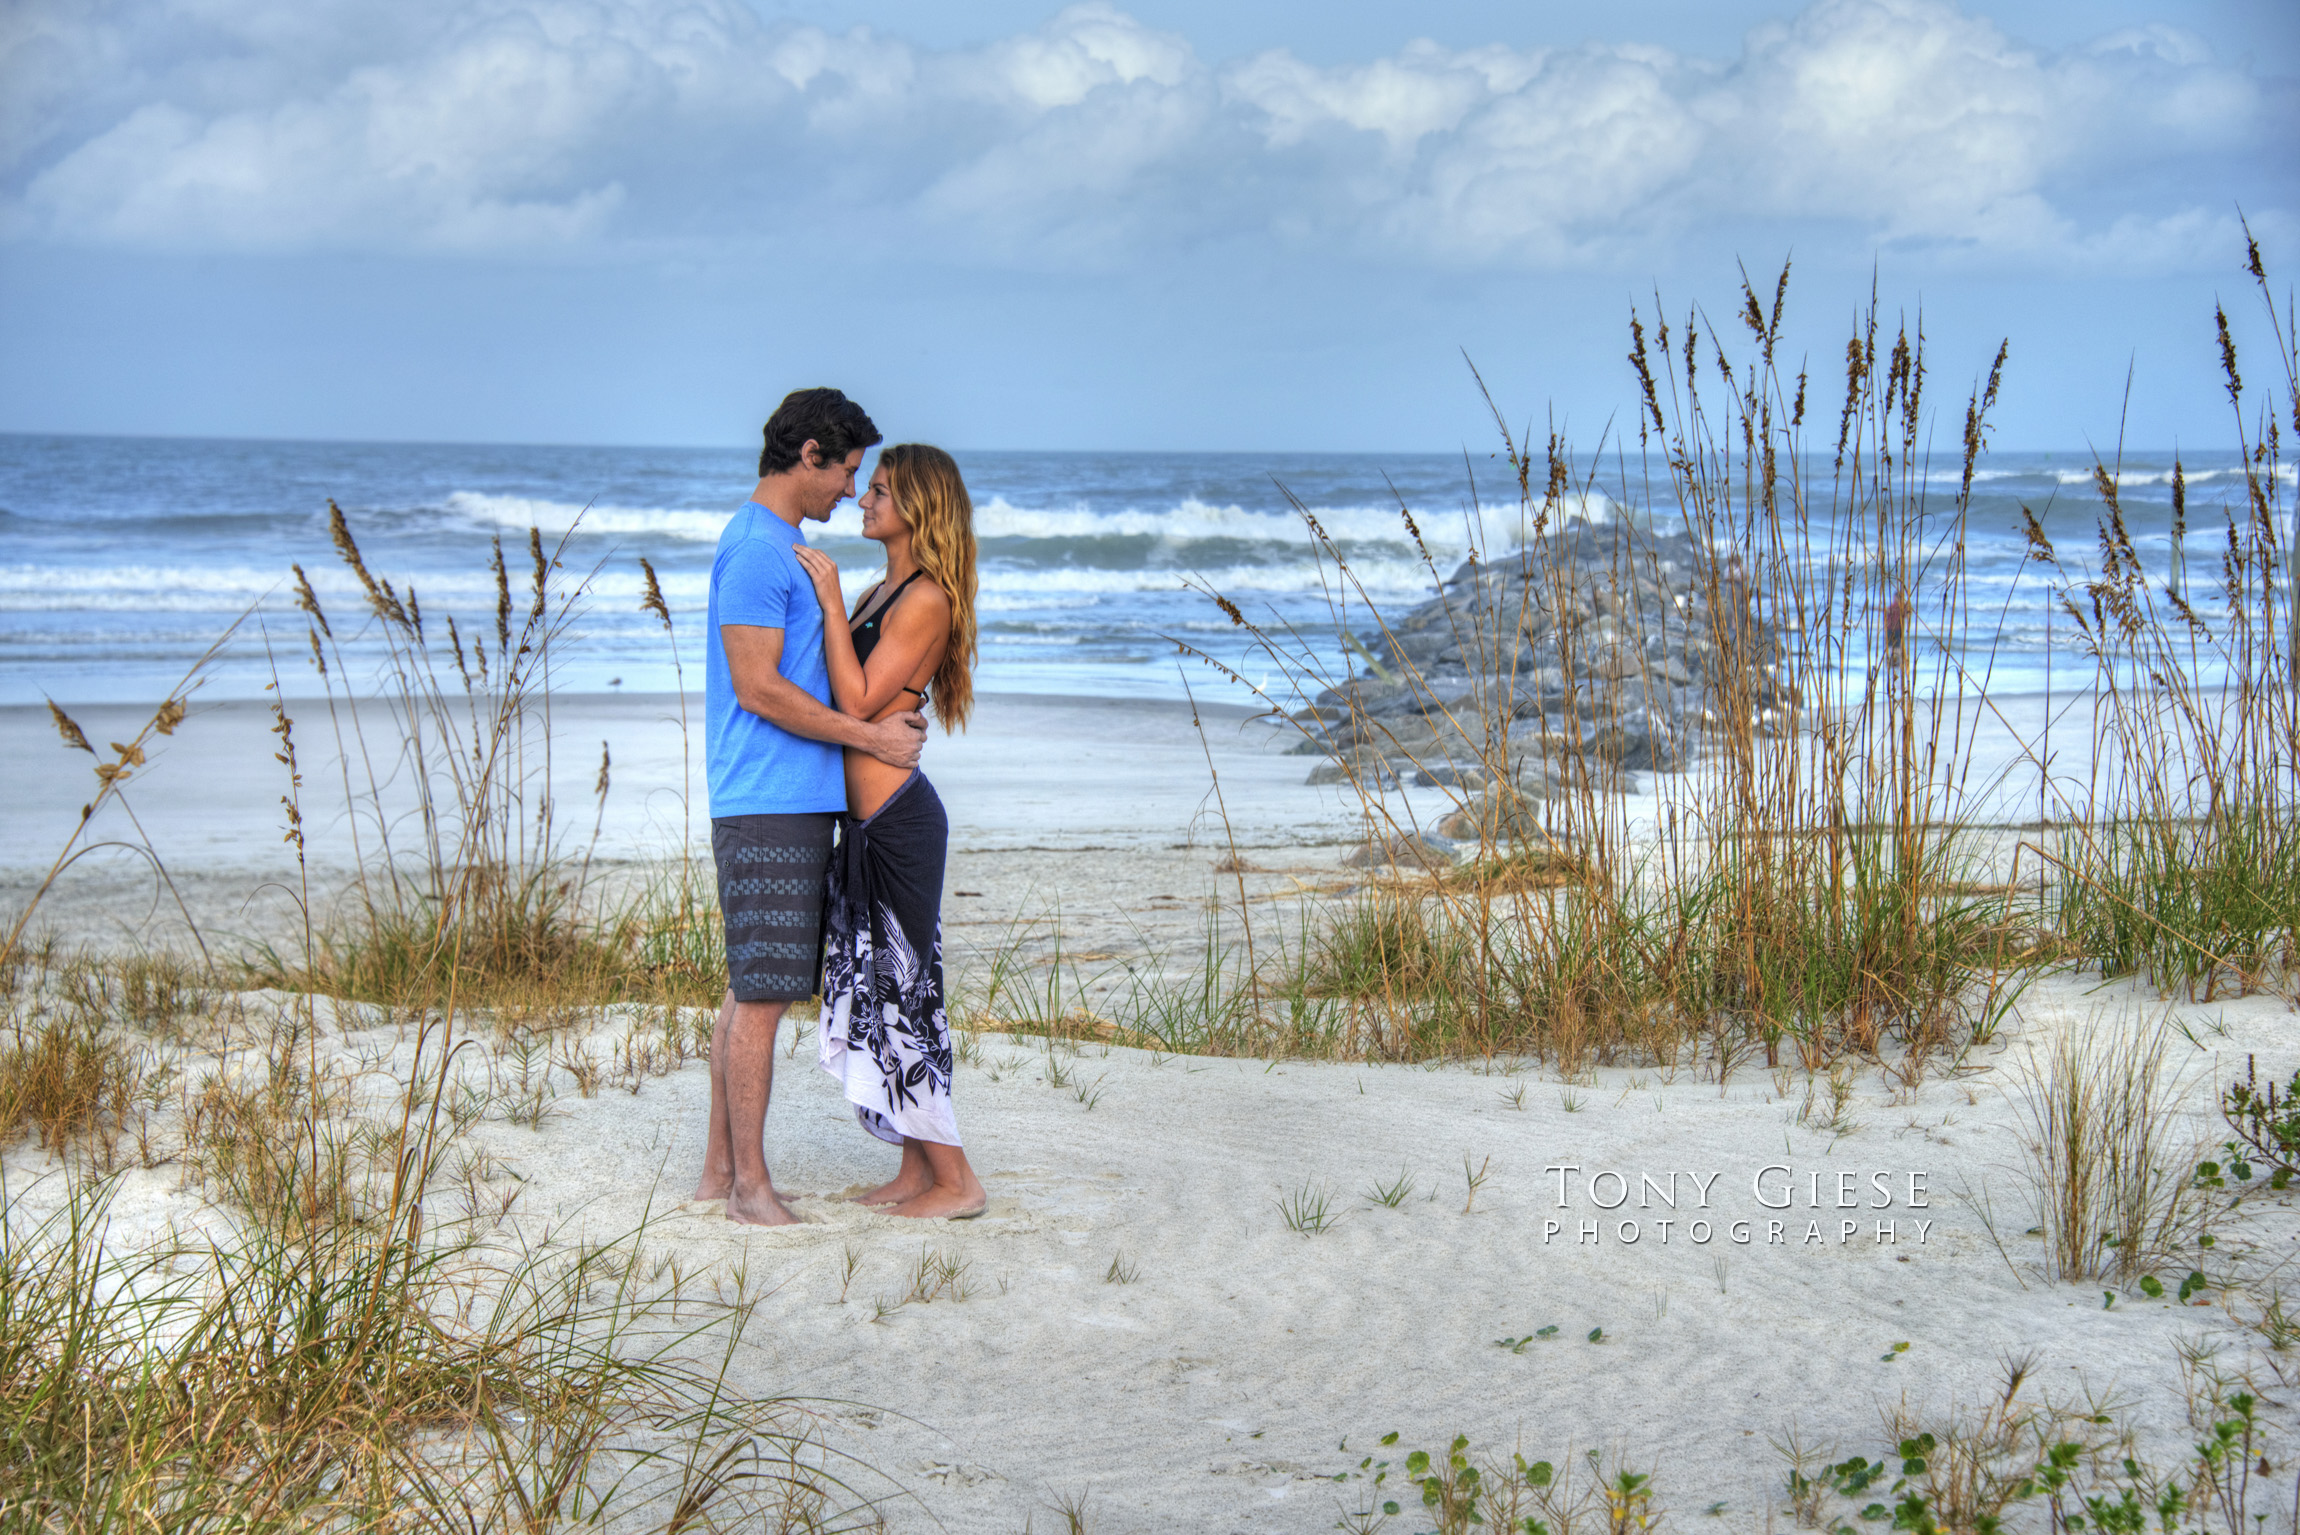 Capturing those great romantic moments on New Smyrna Beach.